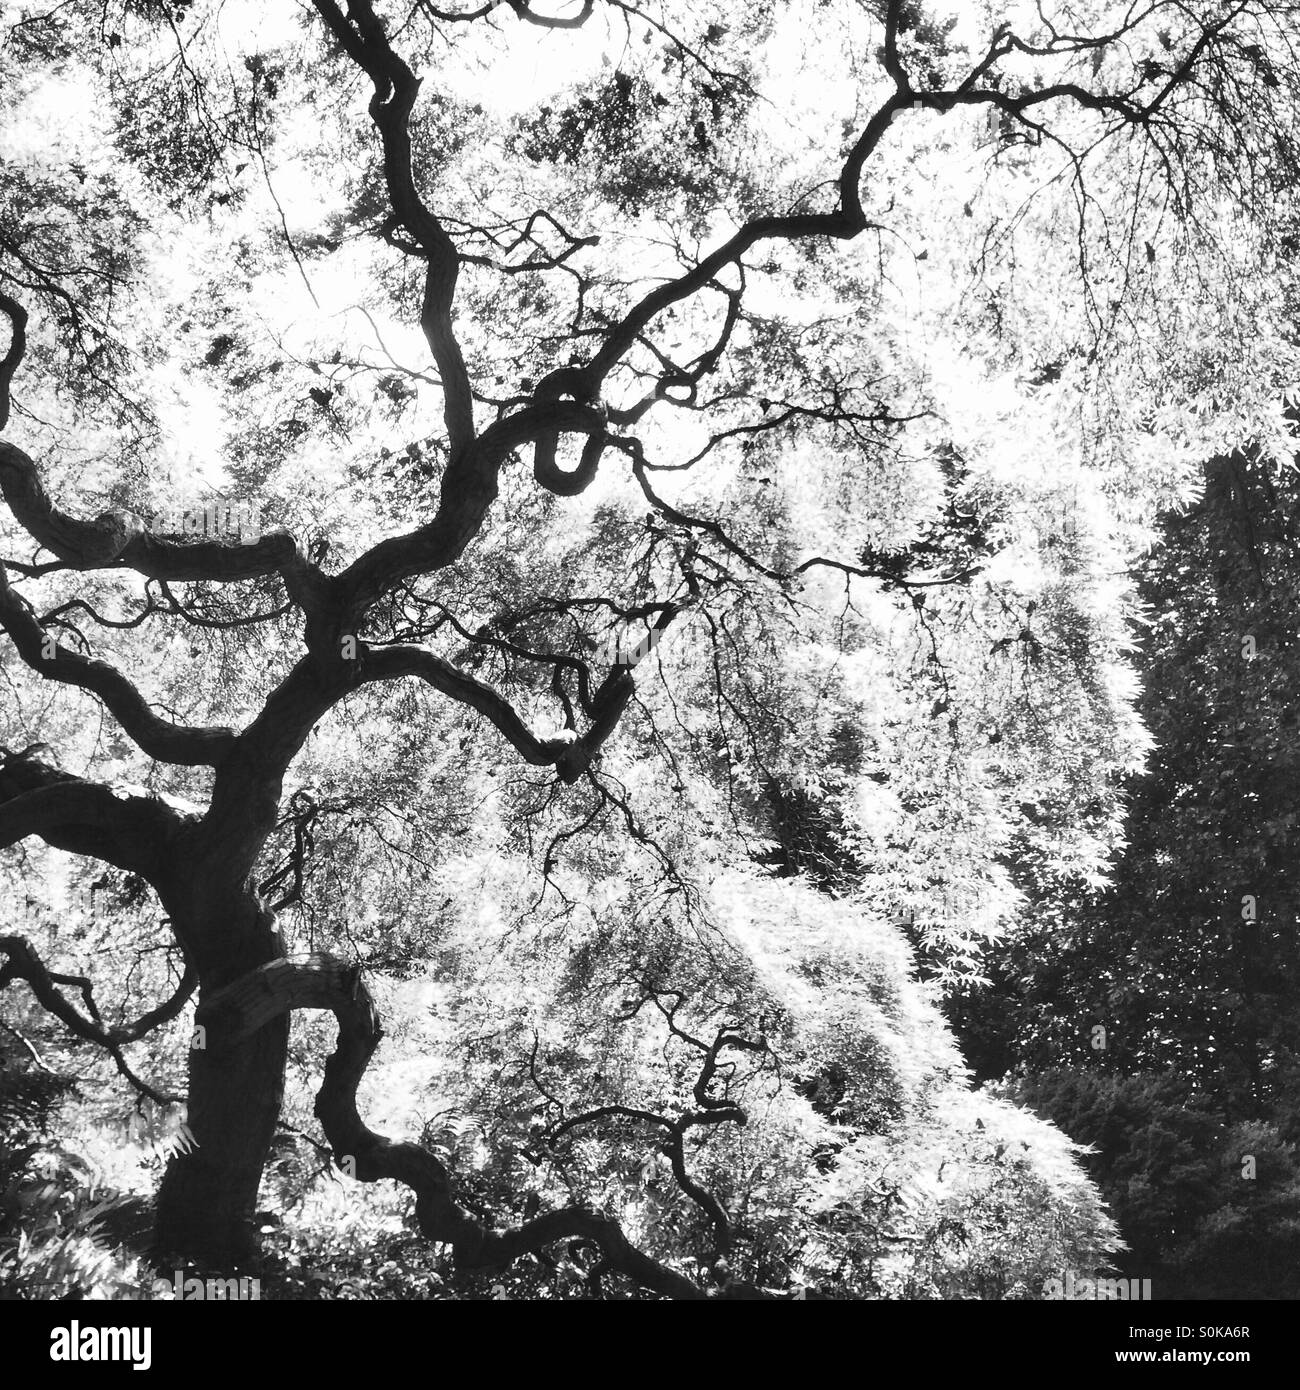 Gnarly tree in black and white - Stock Image